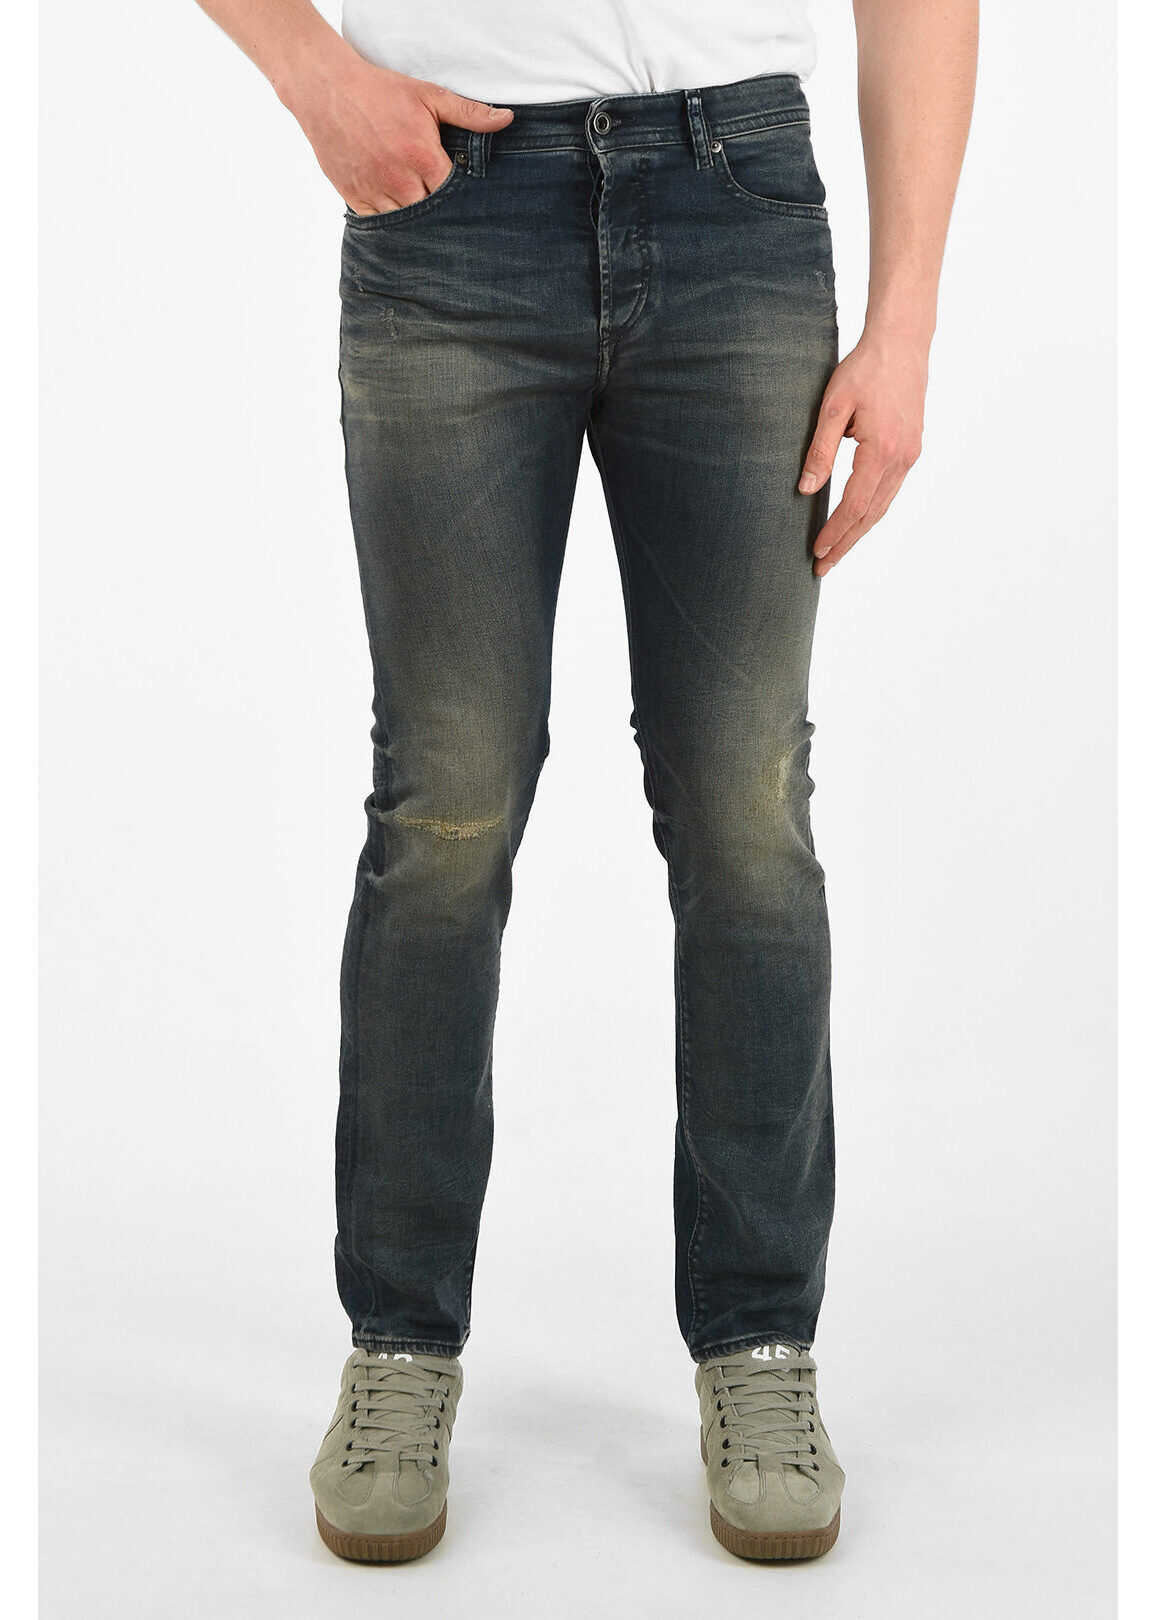 Diesel 16cm Stonewashed BUSTER Jeans L32 BLUE imagine